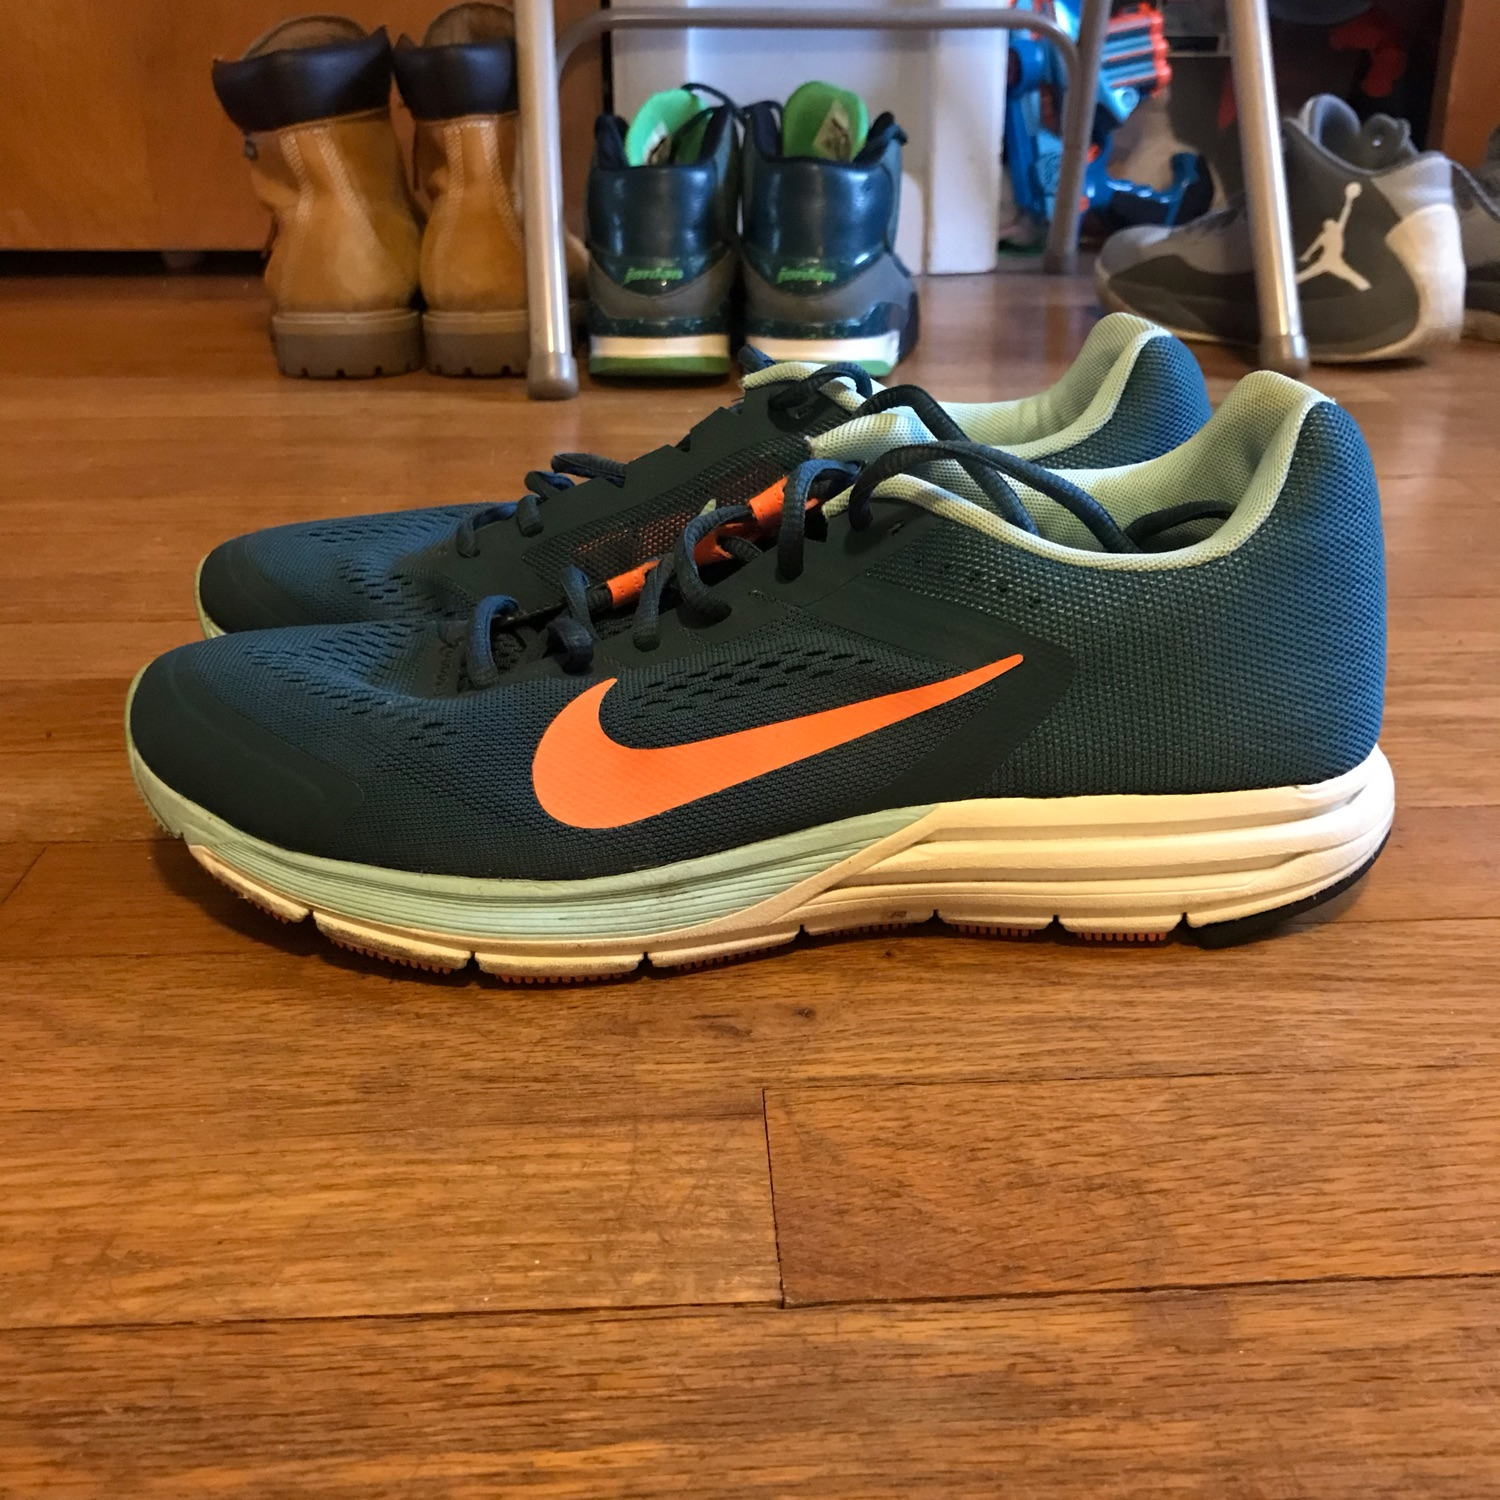 promo code 5d949 e65a8 Nike Zoom Structure 17